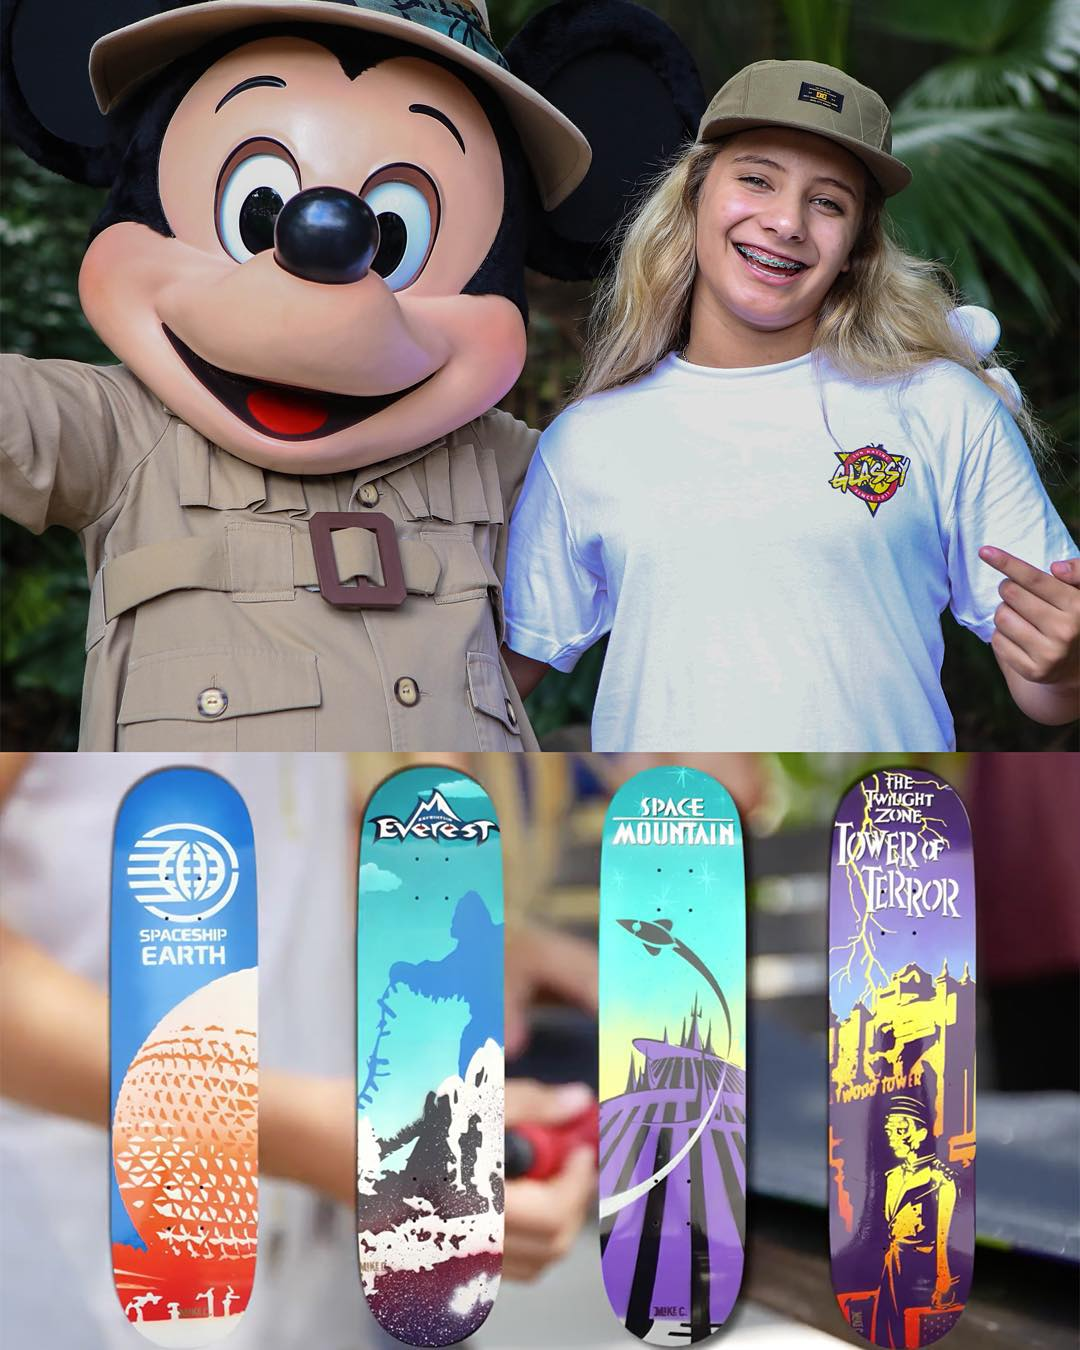 #XGames silver medalist @AlanaSmithSkate's day at @WaltDisneyWorld inspired four new skate deck designs!  Check 'em out by clicking the link on @wdwbestdayever's profile page.